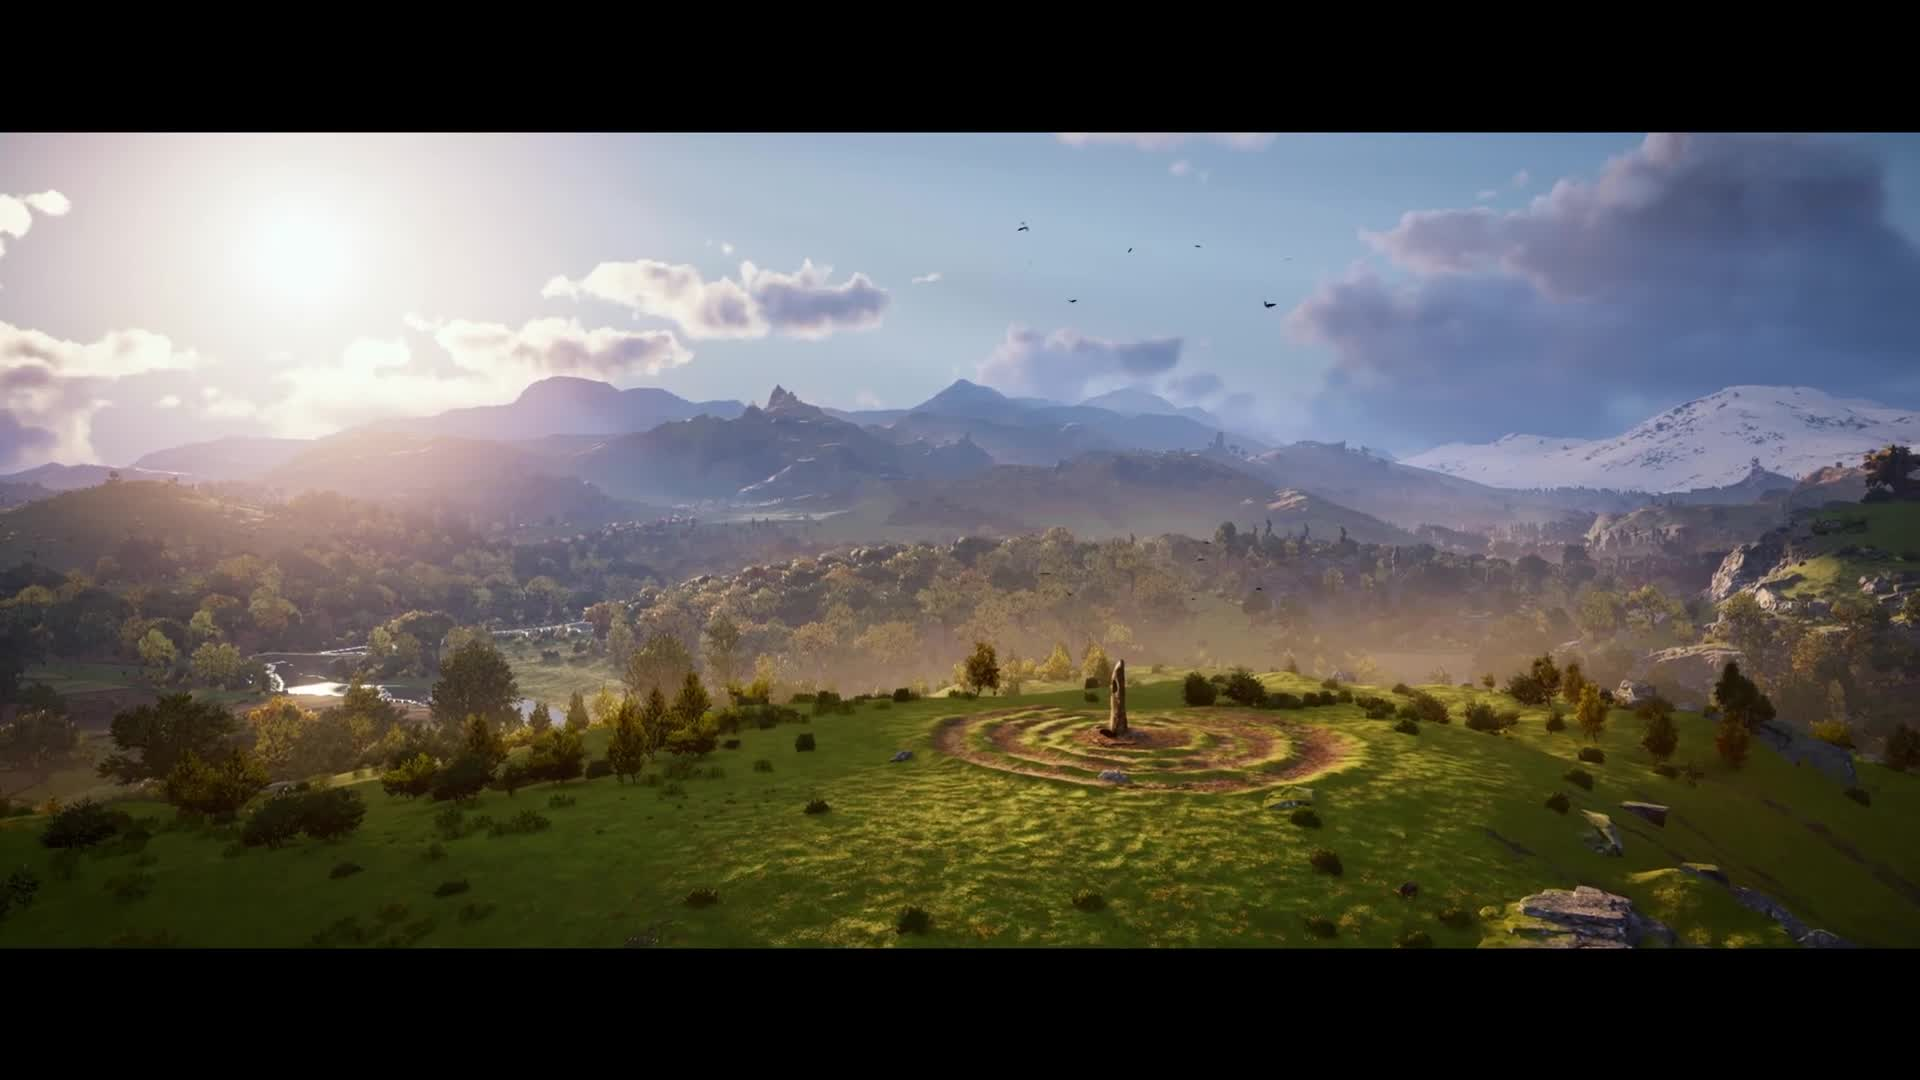 Trailer, Xbox, Ubisoft, Gameplay, Assassin's Creed, Xbox Series X, Assassin's Creed Valhalla